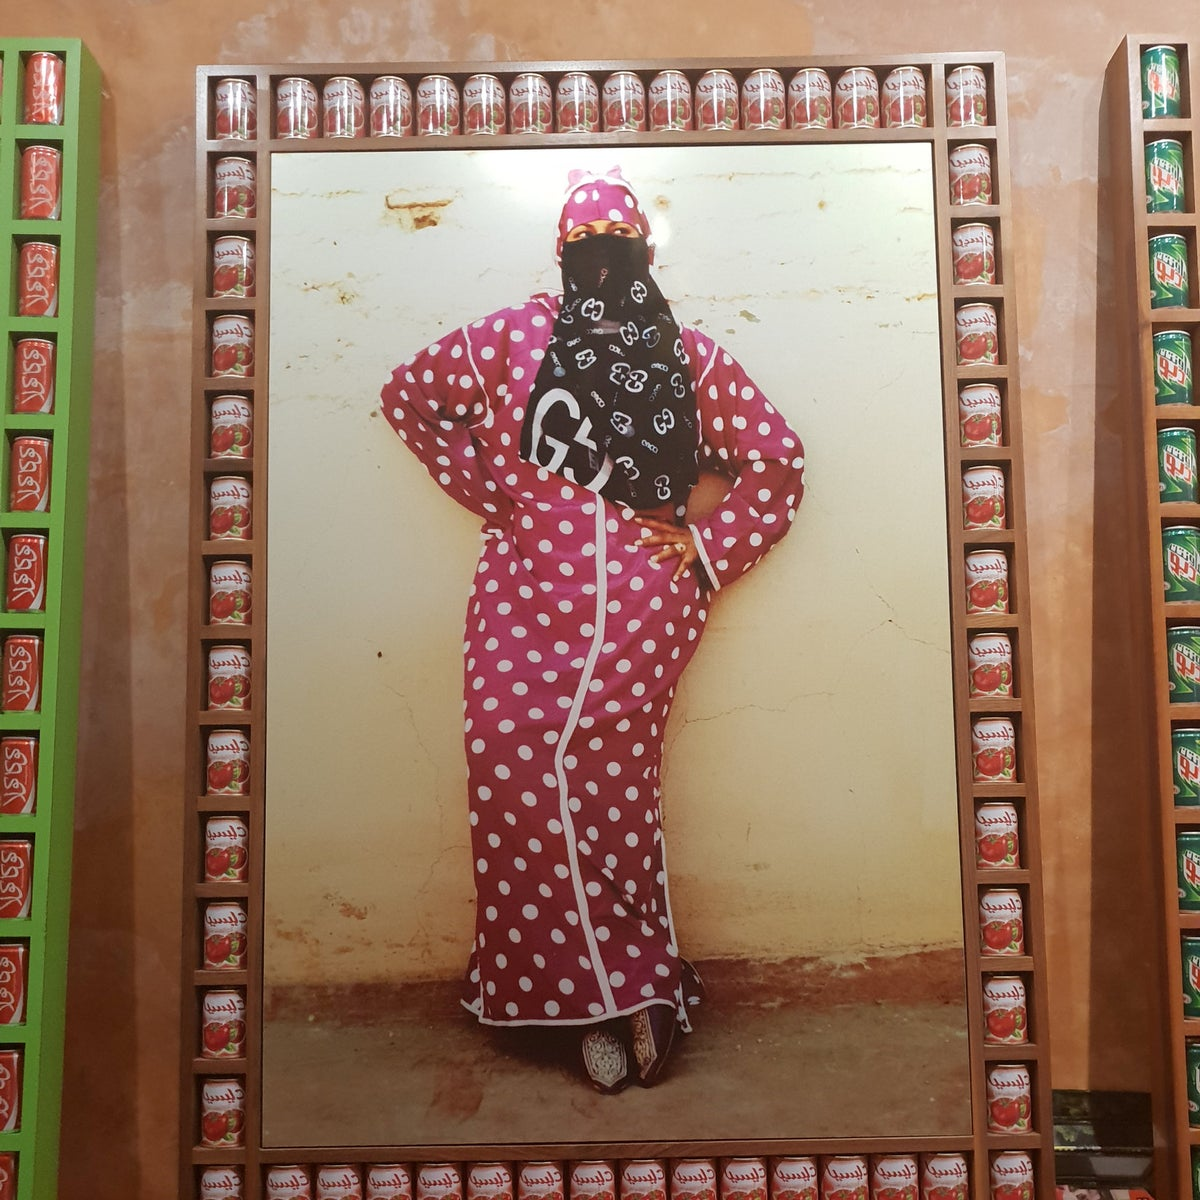 Riad Yima, an art gallery and boutique that showcases local handicrafts and is owned by Hassan Hajjaj.